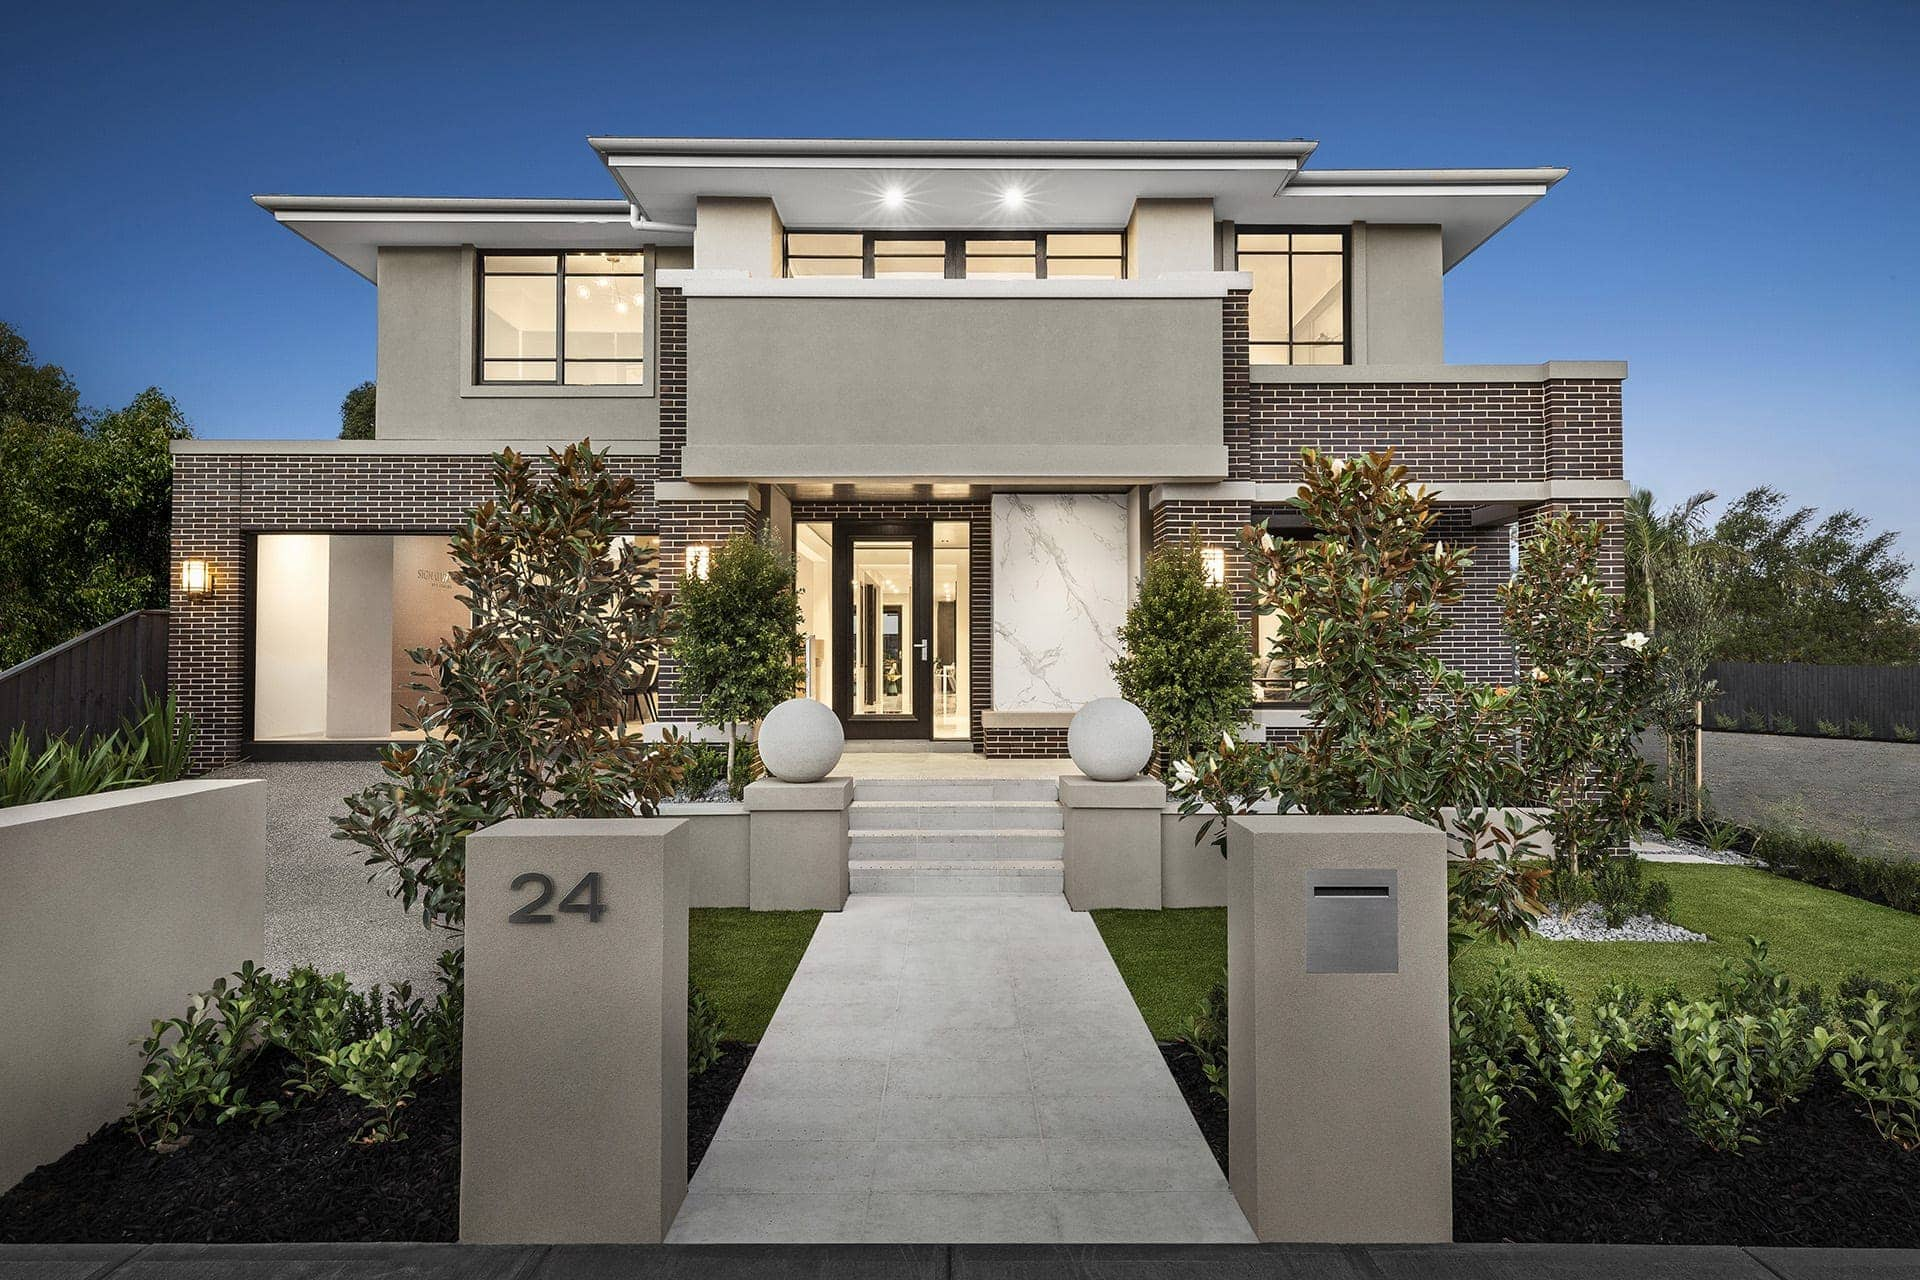 metricon hampshire display home with empire facade